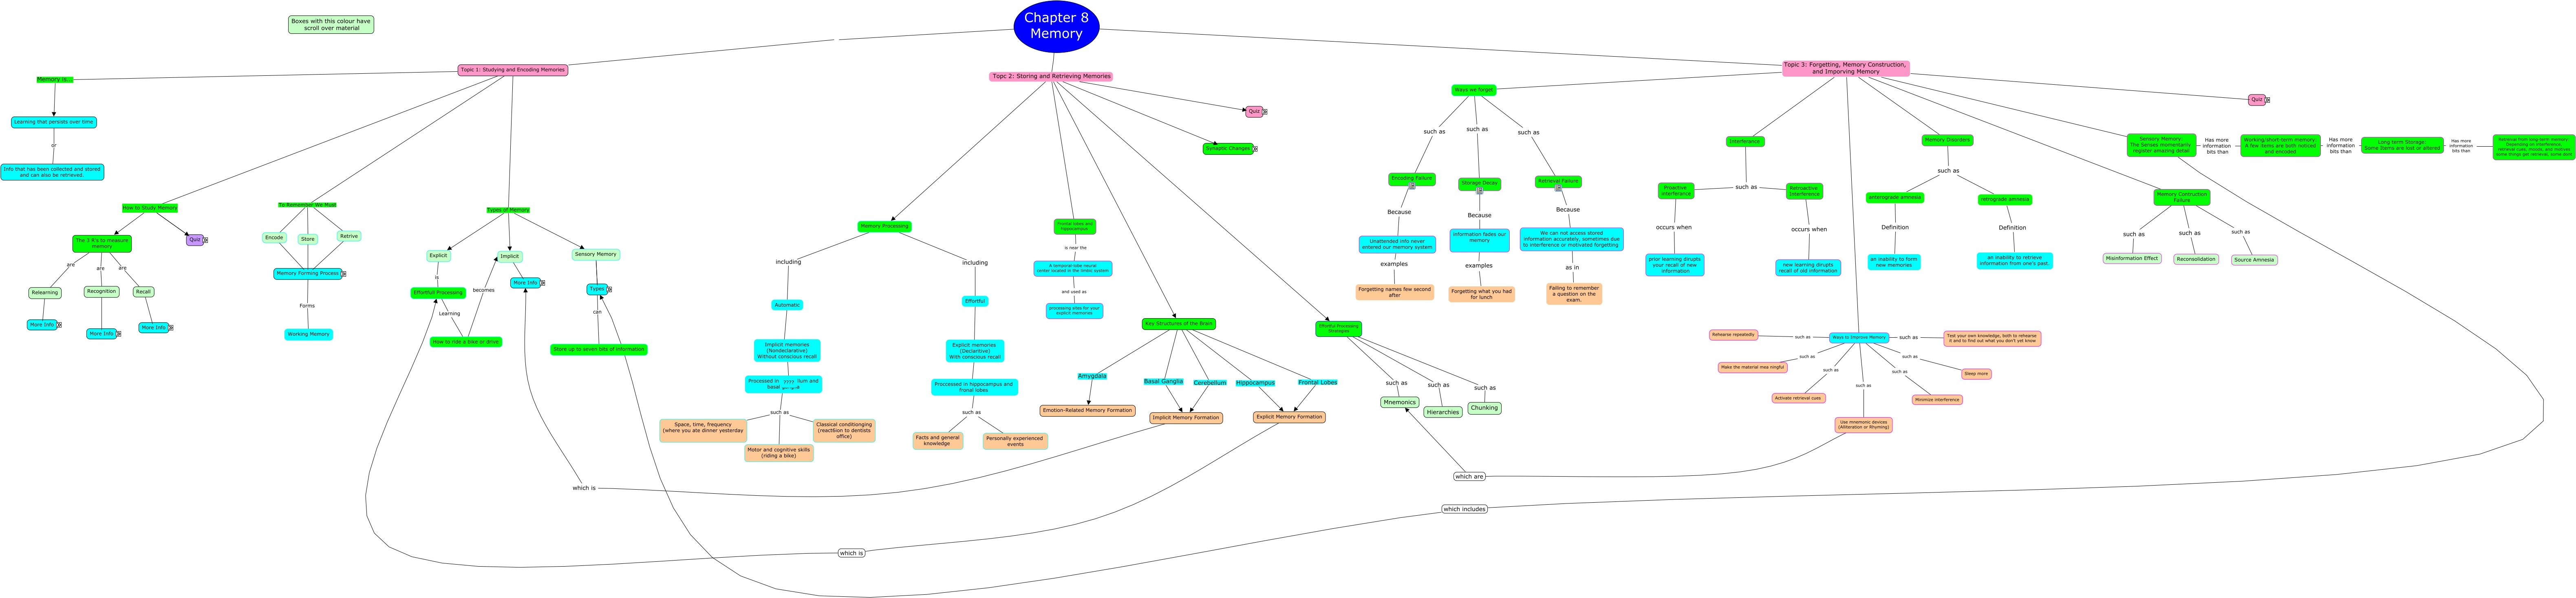 Chapter 8 Memory Concept Map